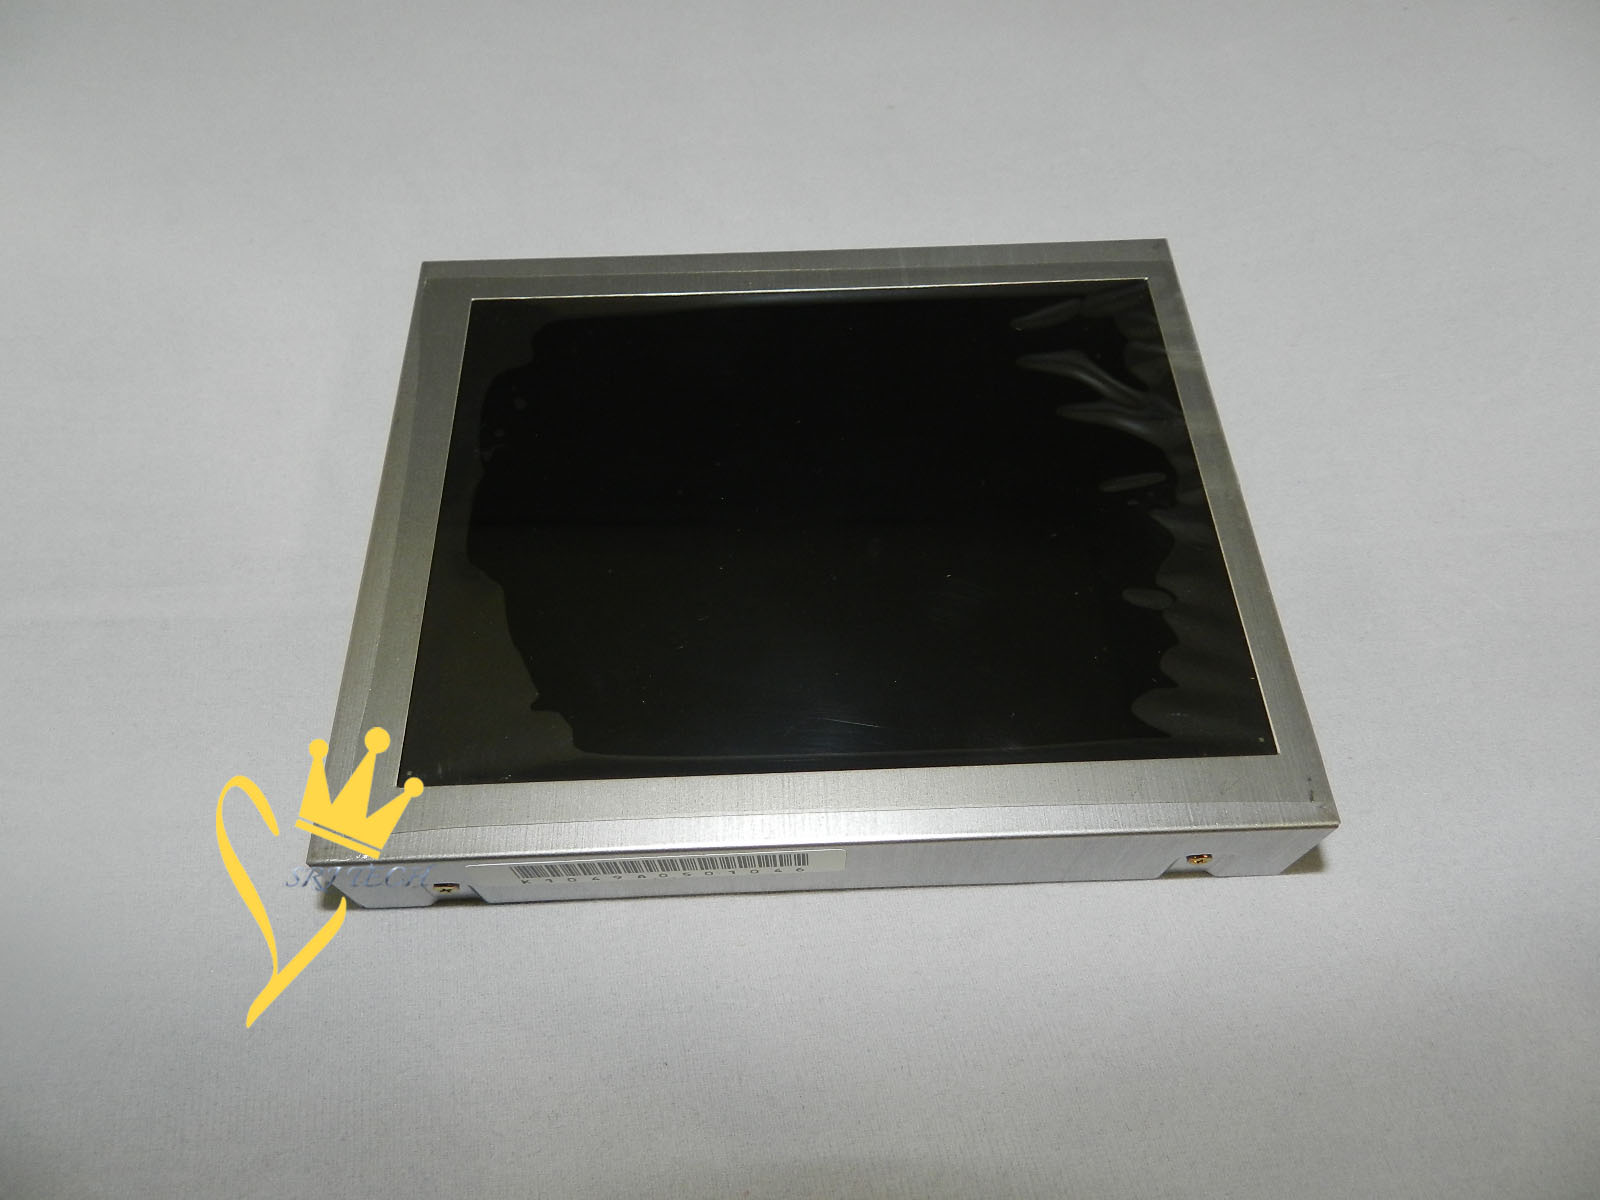 "Original 12.1"" LTD121EWRF, Life book P8110 P8010 LCD display panel for Car Audio Navigation system"